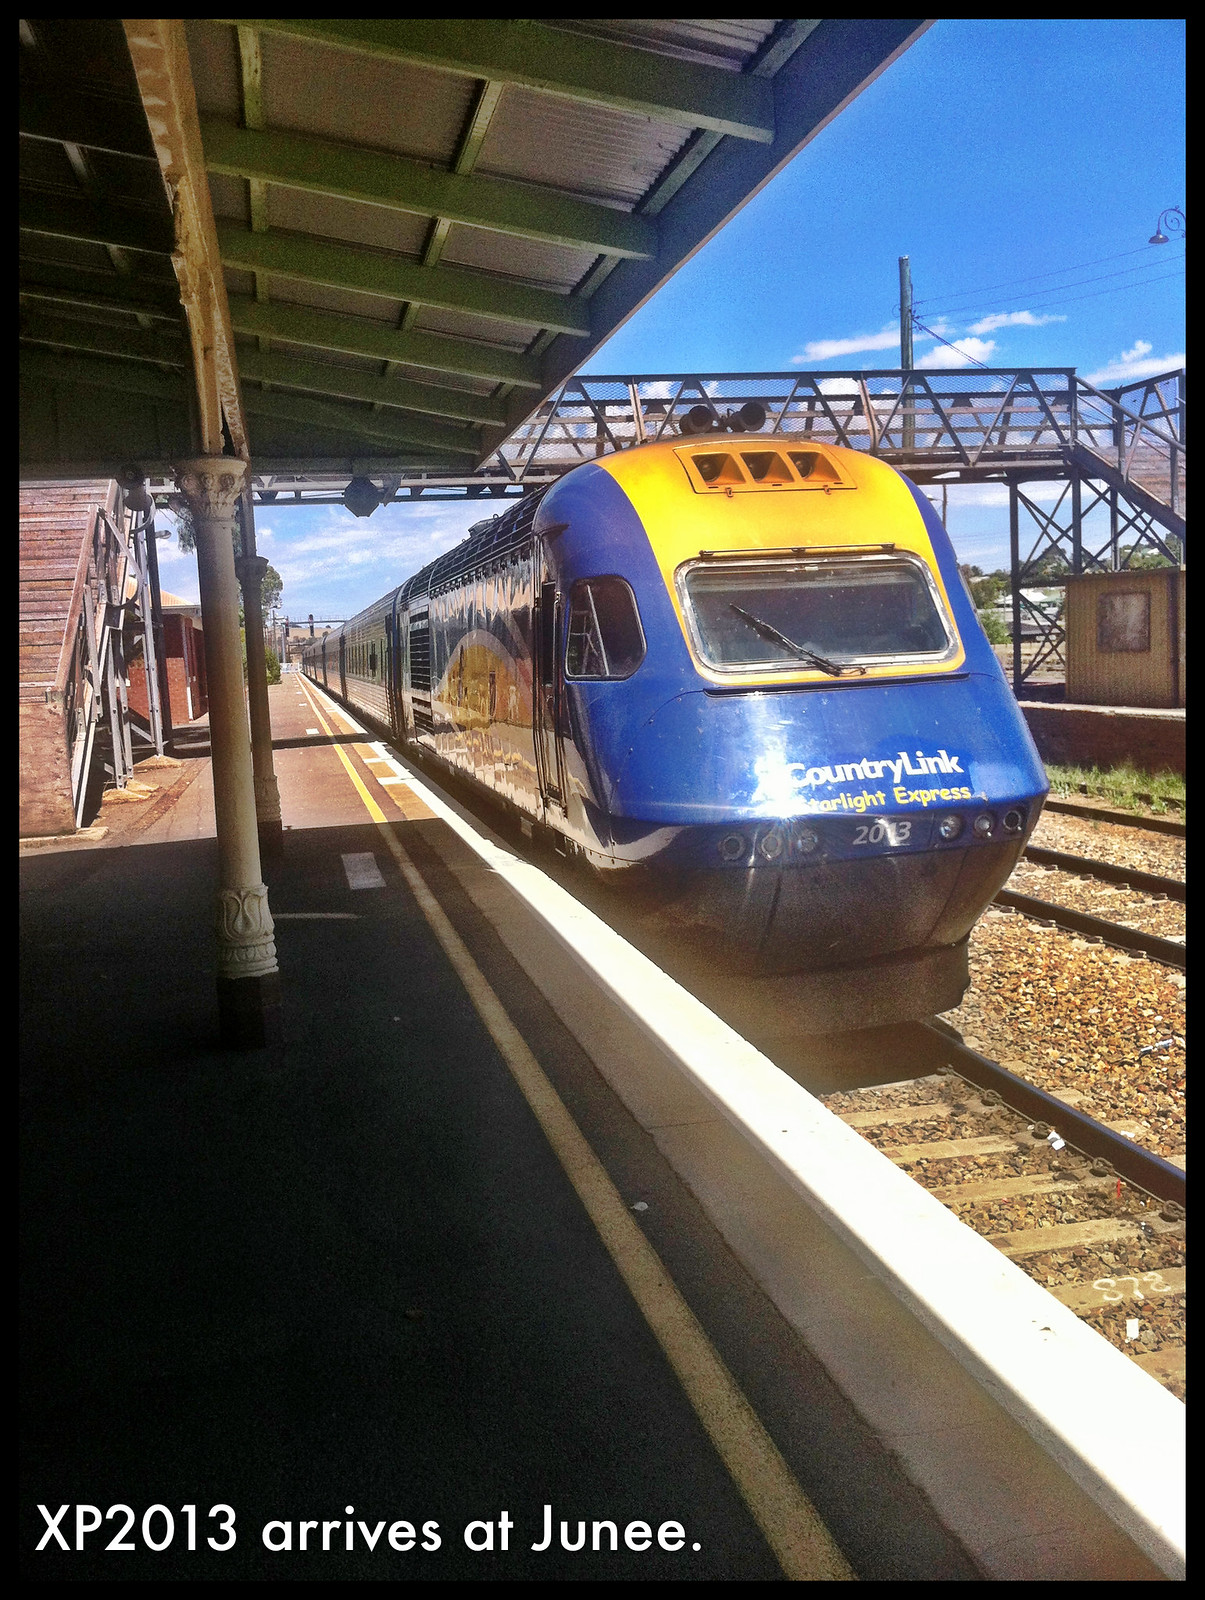 XP2013 arrives at Junee by LC501